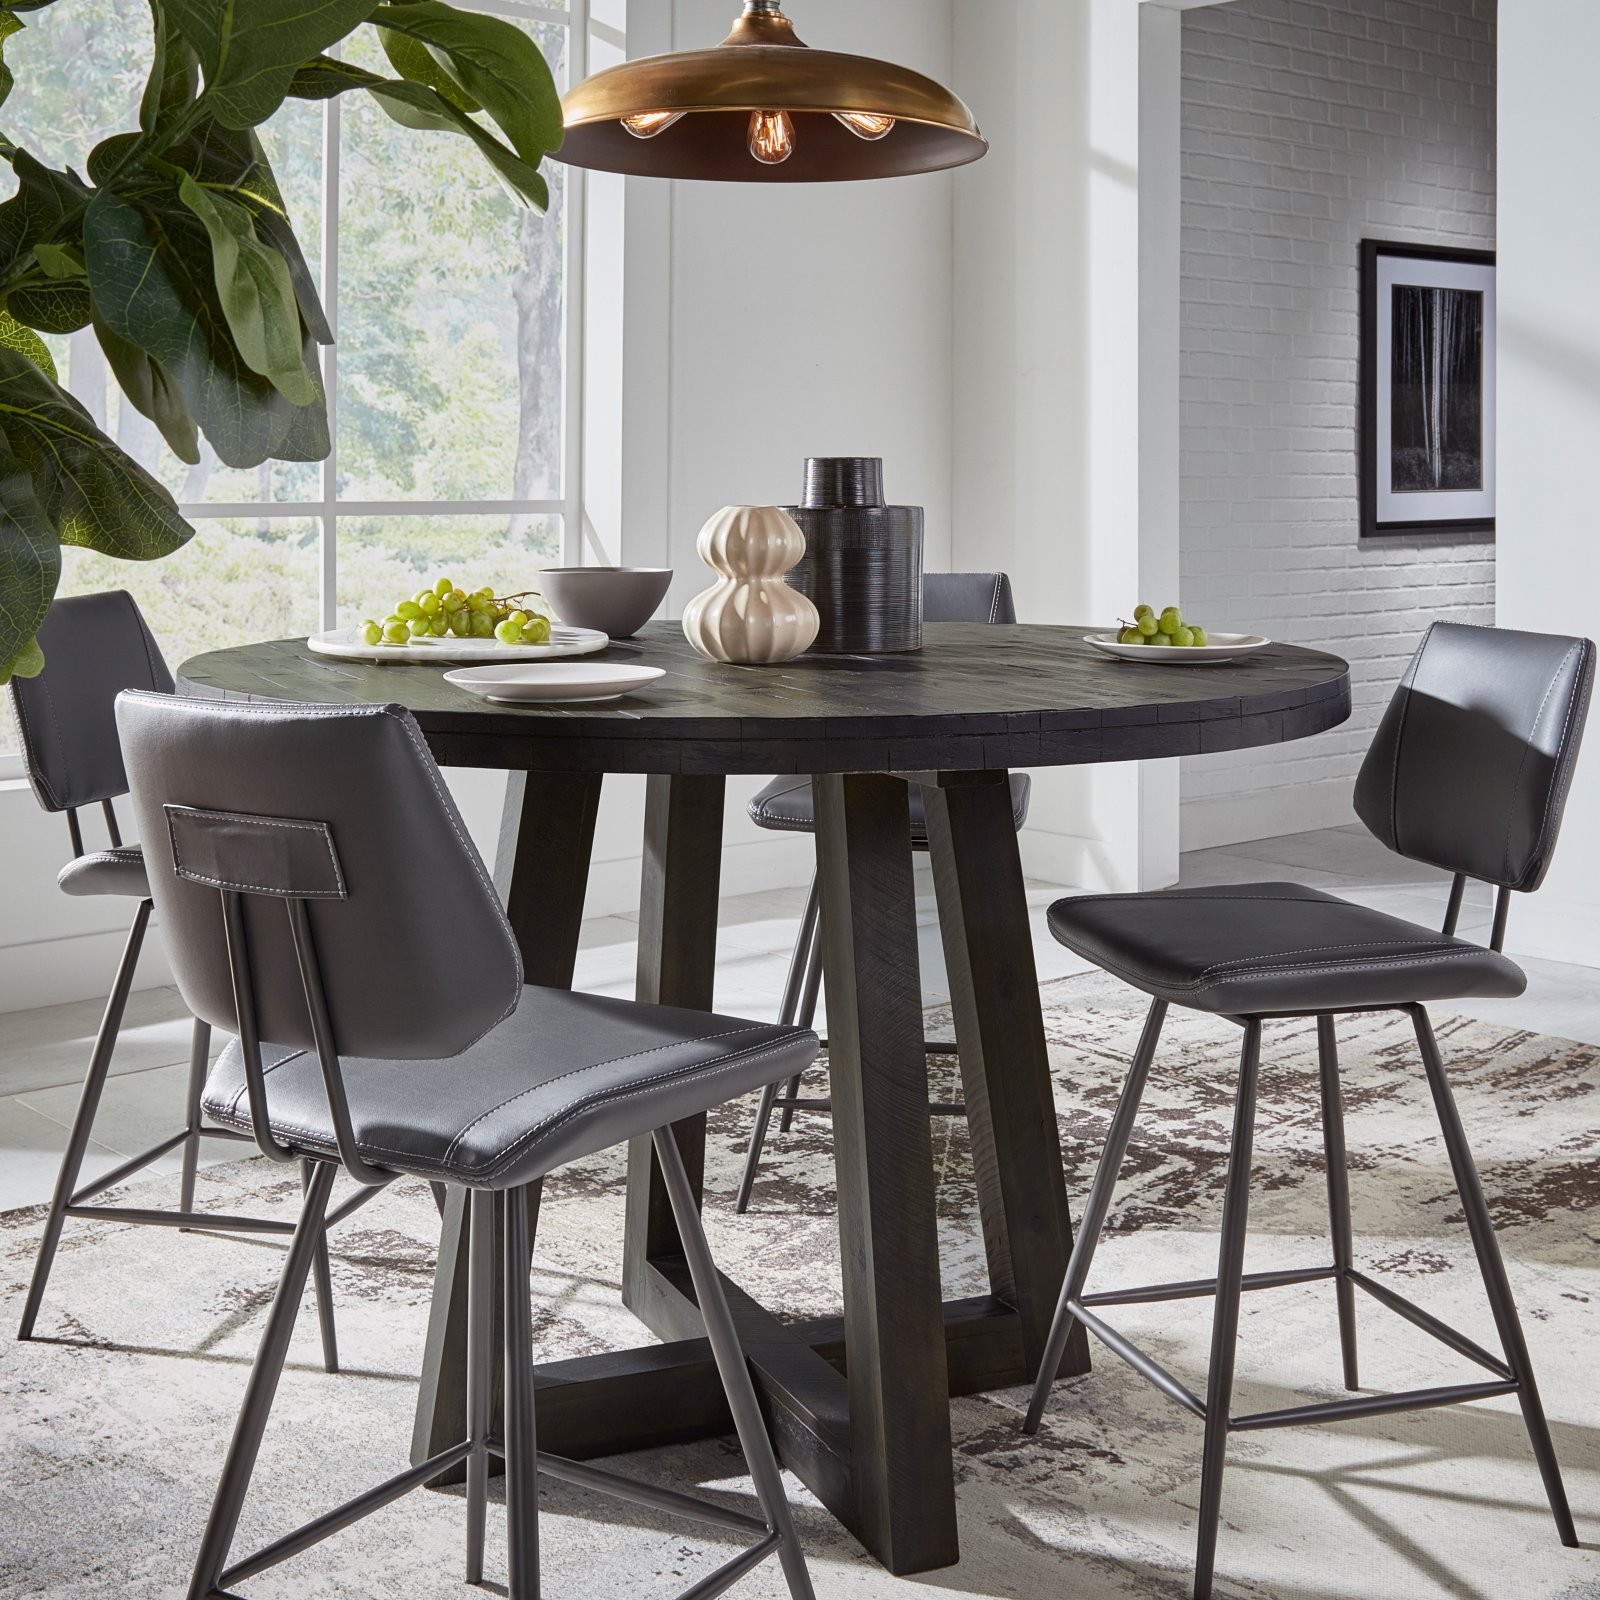 Modus Orson 54 in. Round Counter Height Dining Table by Modus Furniture International